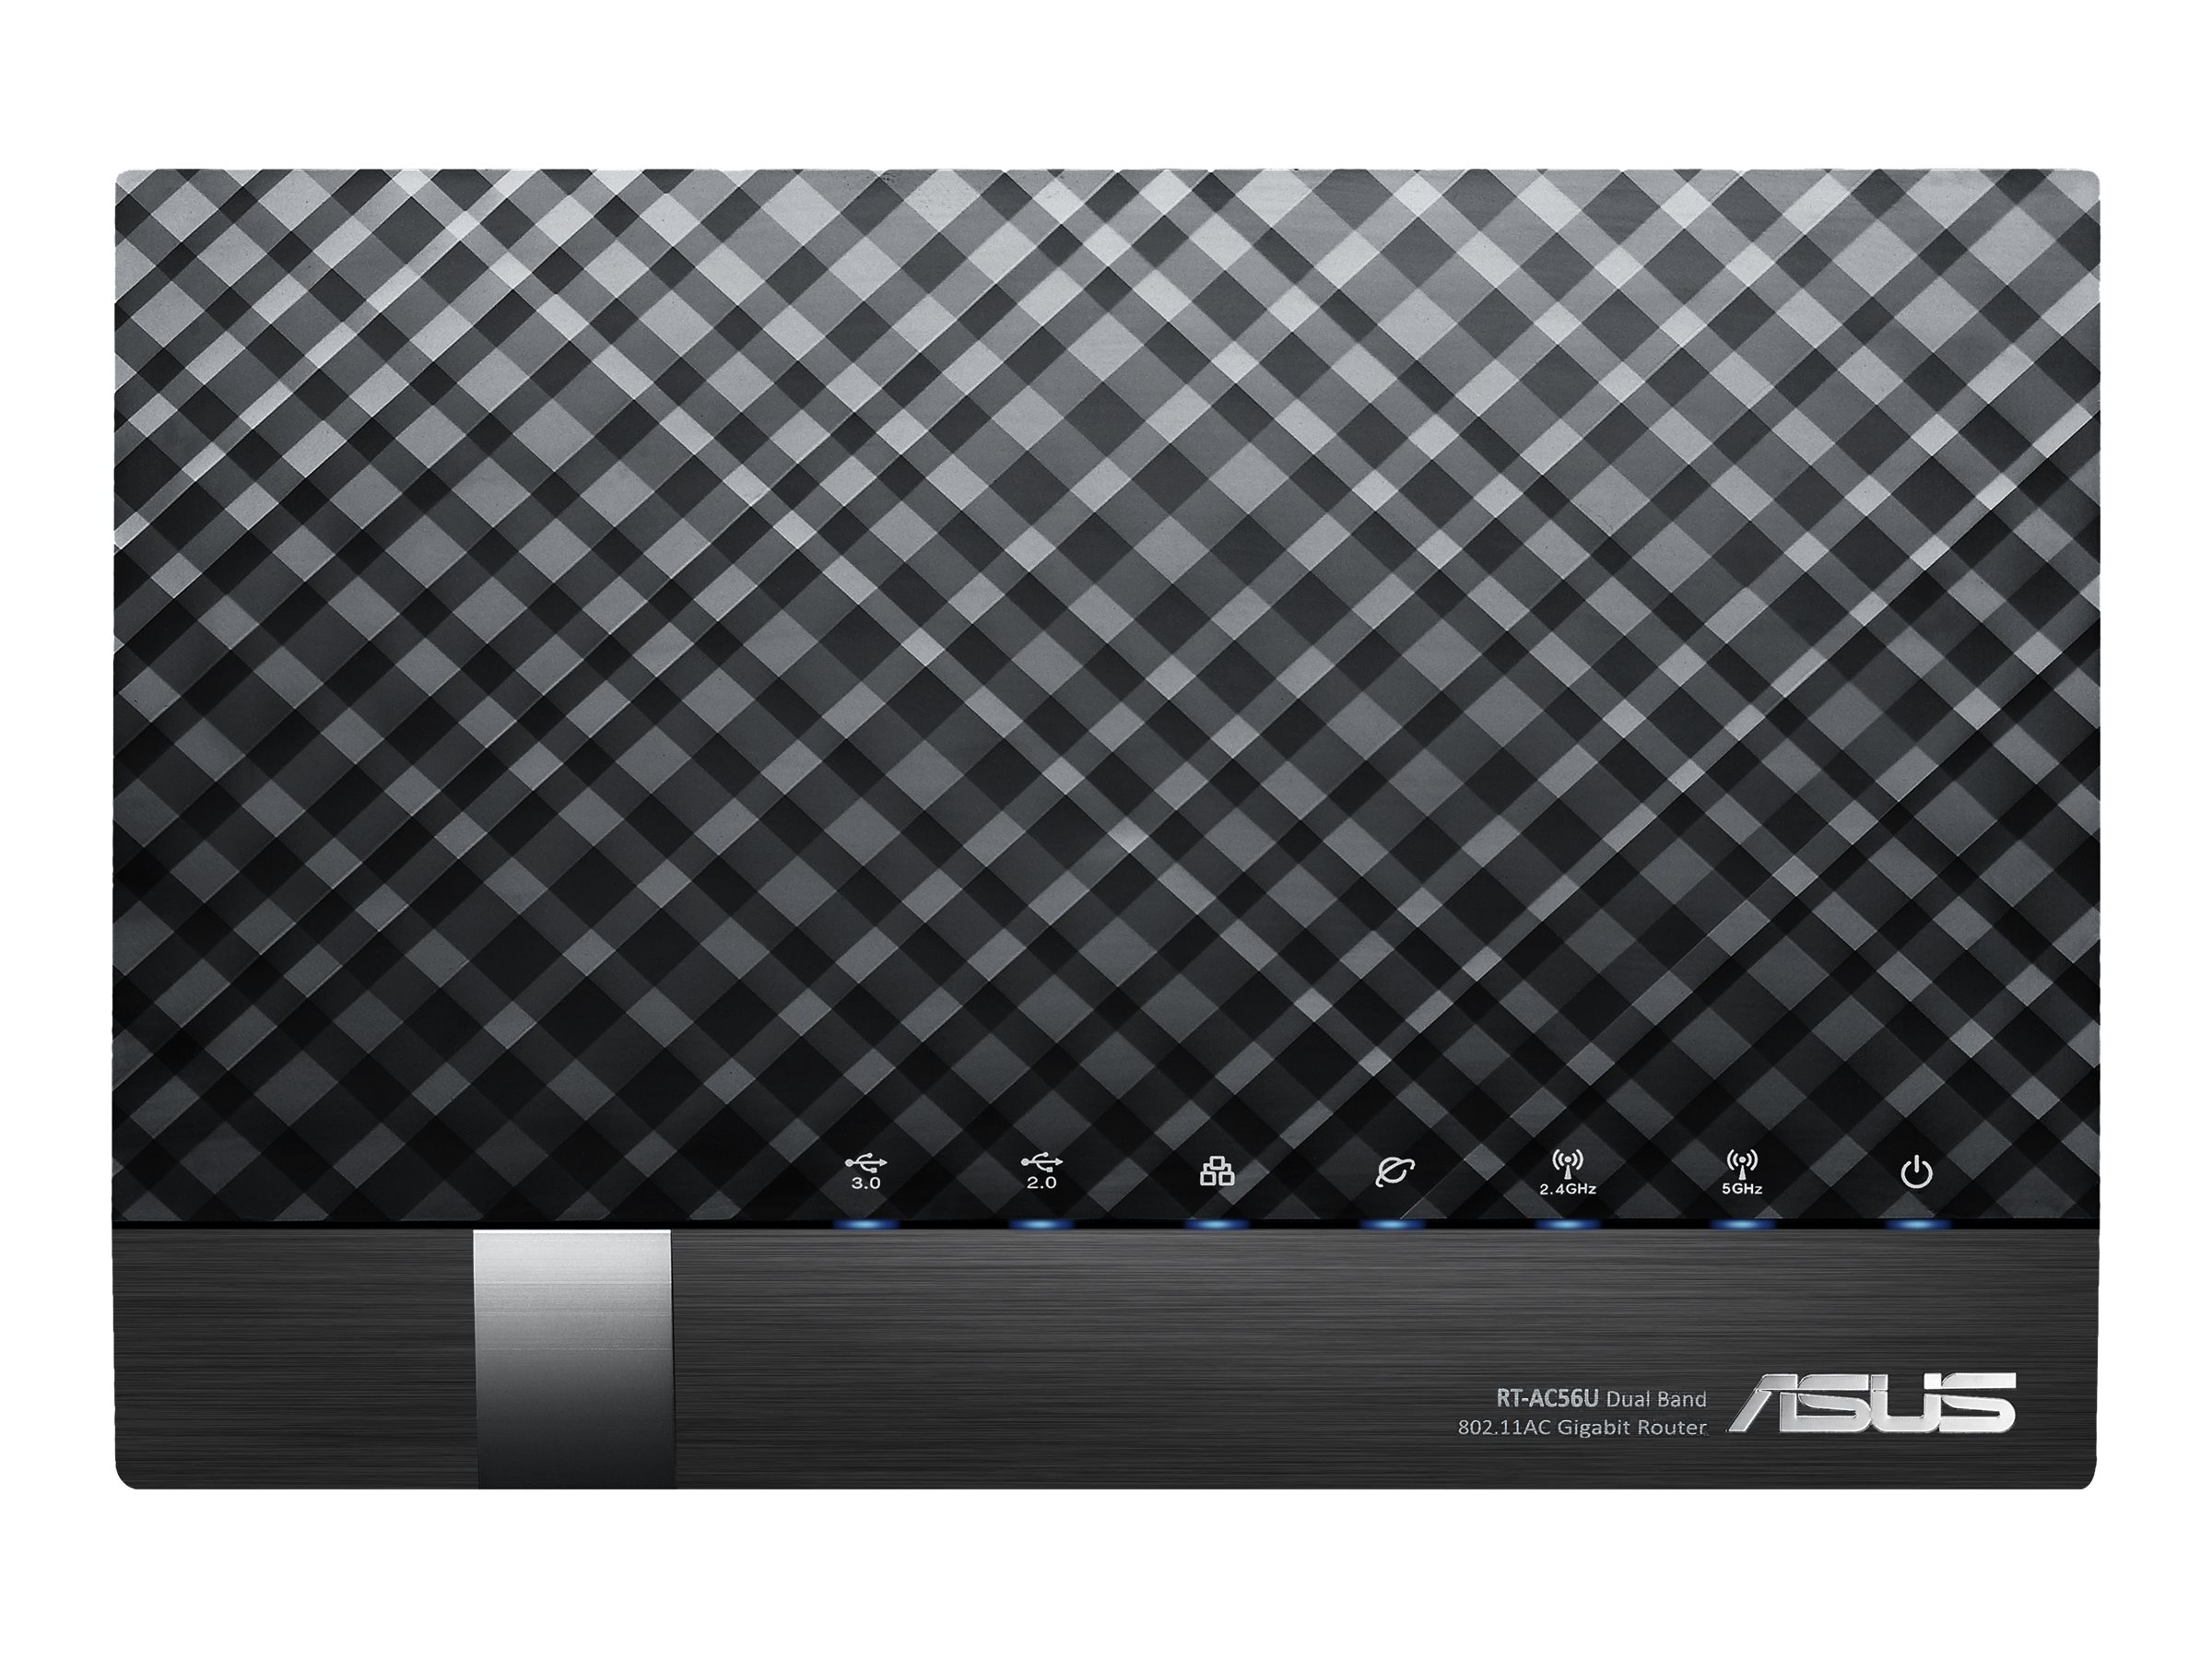 Asus 802.11ac Dual-Band Wireless-AC1200 Gigabit Router, RT-AC56U, 15915385, Wireless Routers